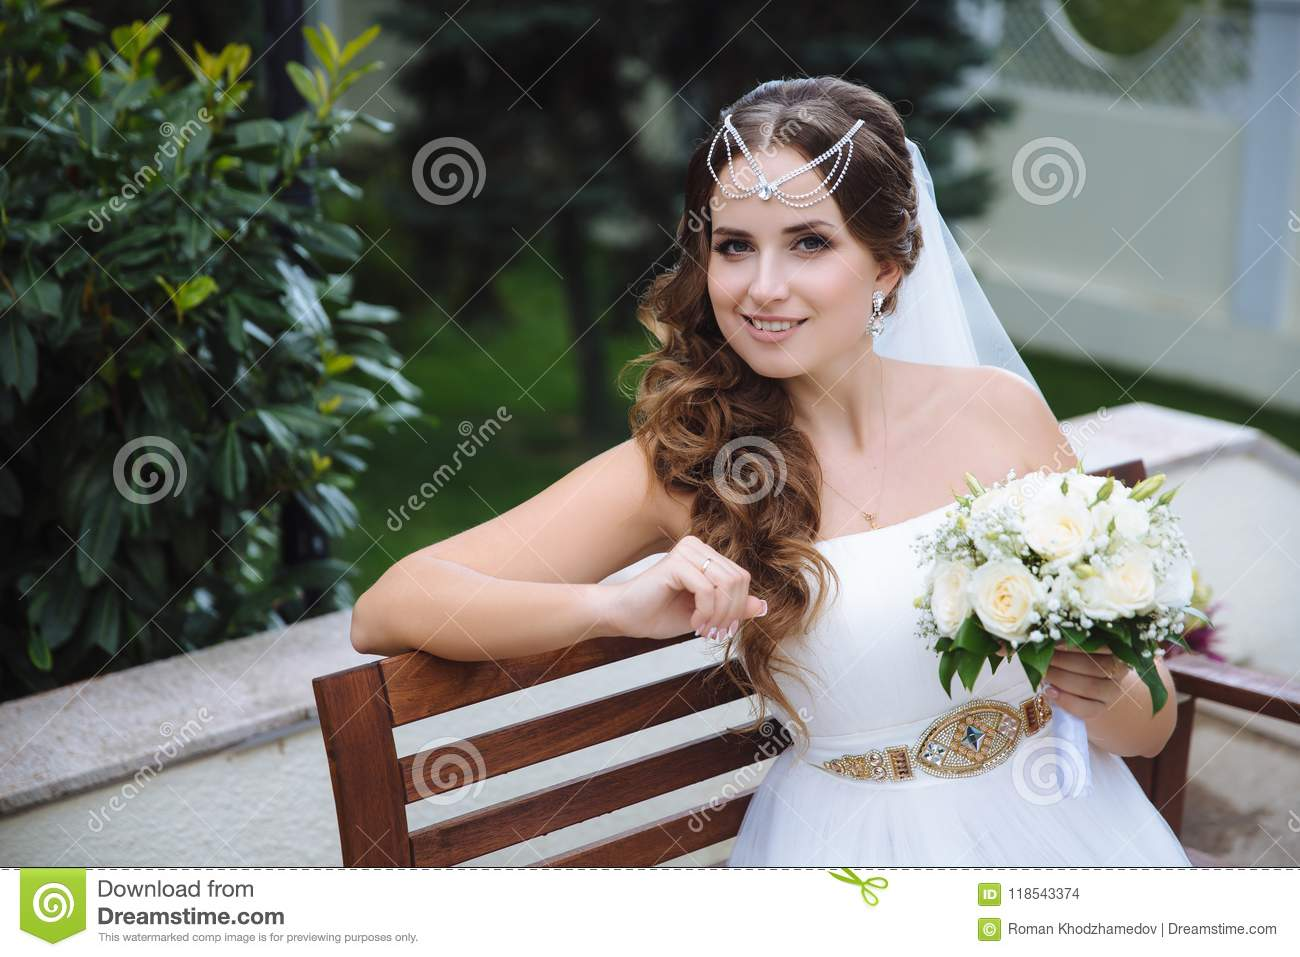 The Smiling Bride Is Dressed In A Greek Style Wedding Dress Her